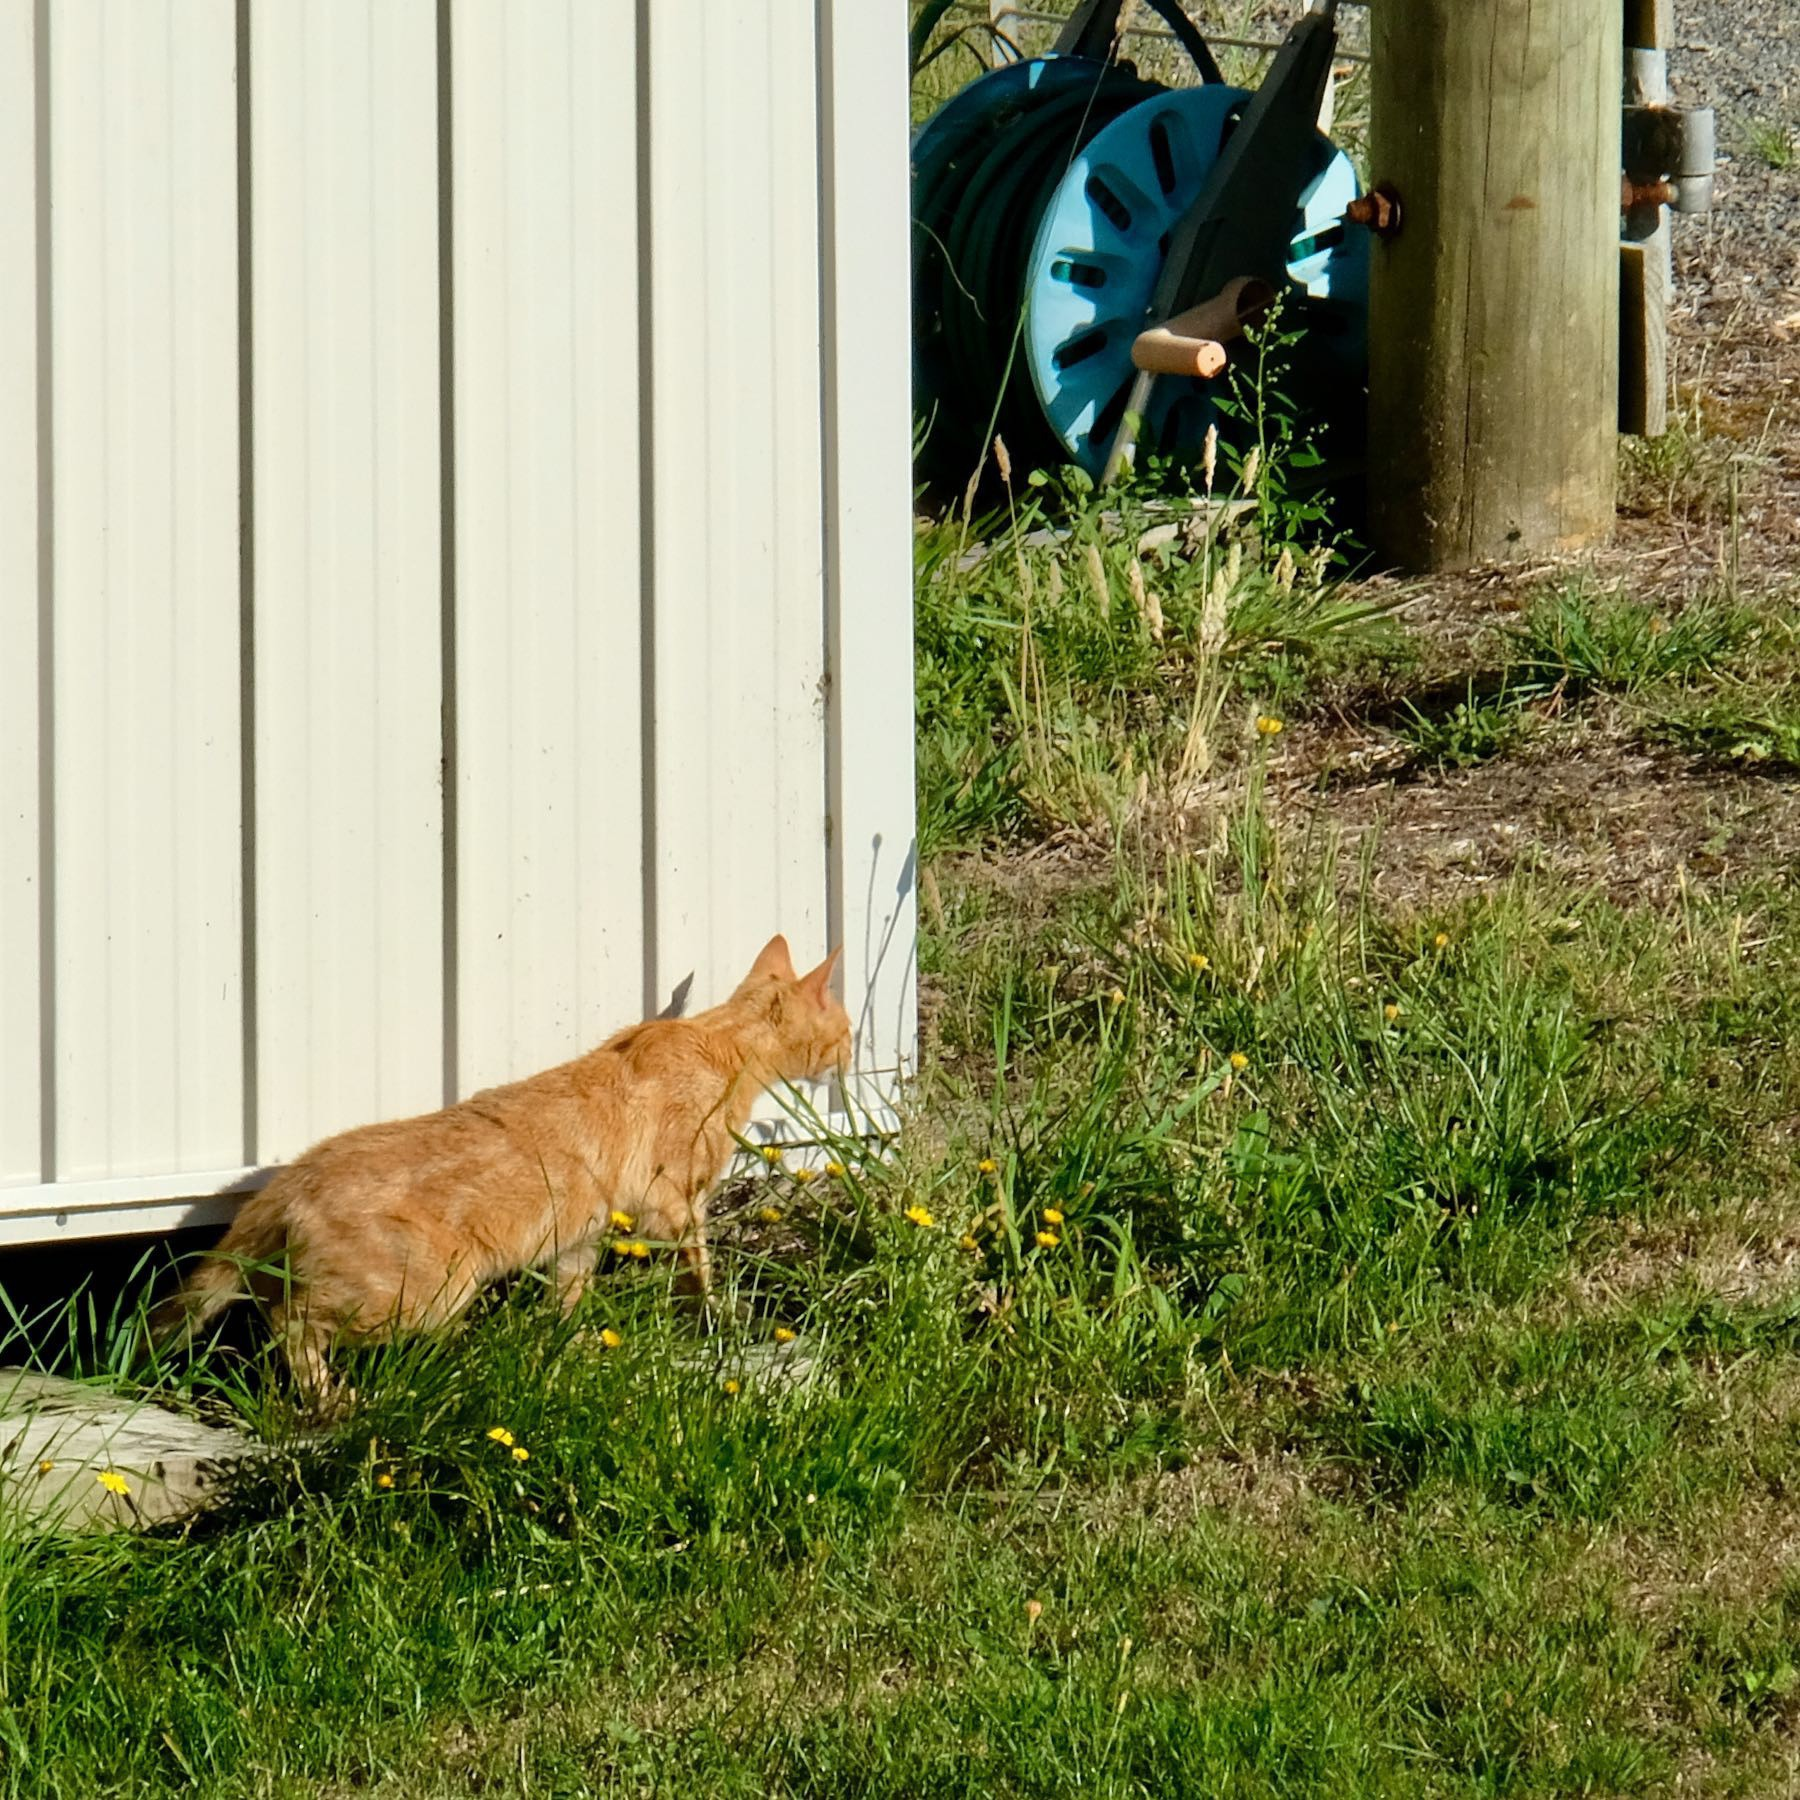 Ginger cat by a garden shed.